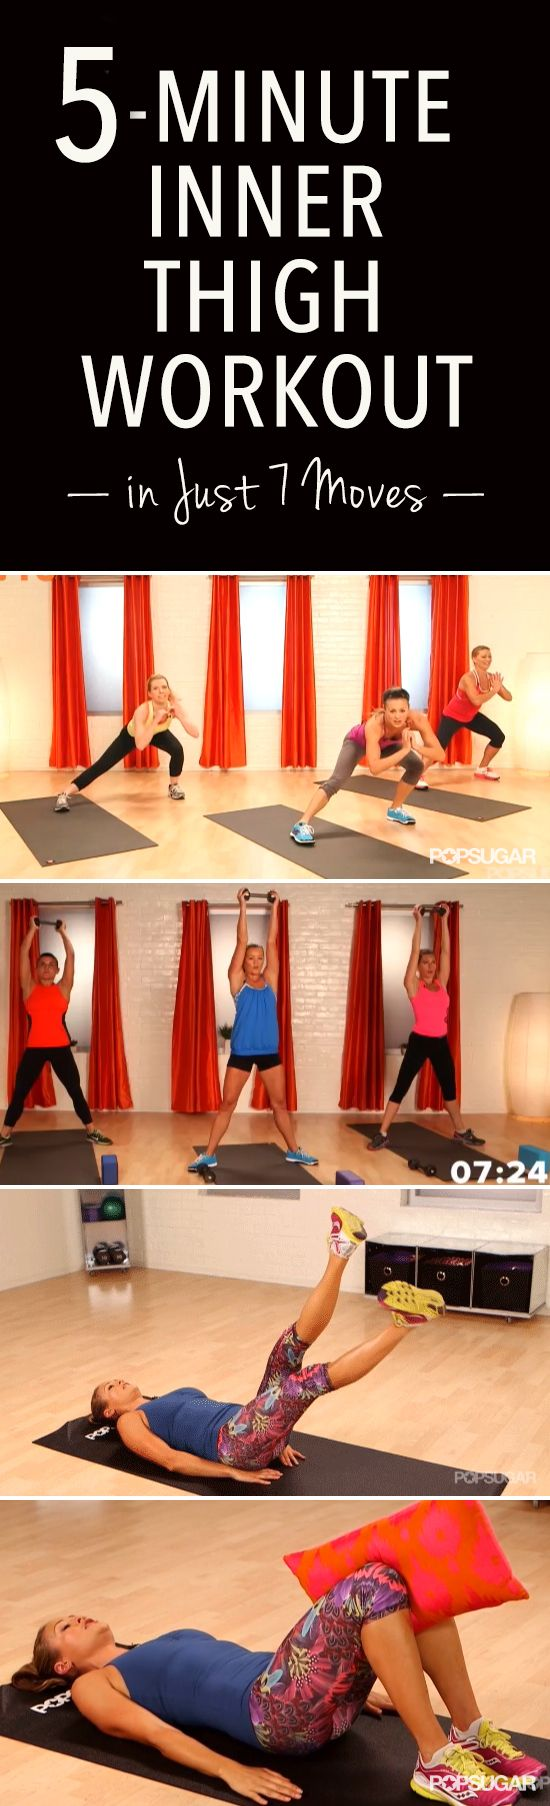 A 5-Minute Workout For Slimmer Inner Thighs More inf. marykaycosmetics.taveras@gmail.com or 646 407 1444